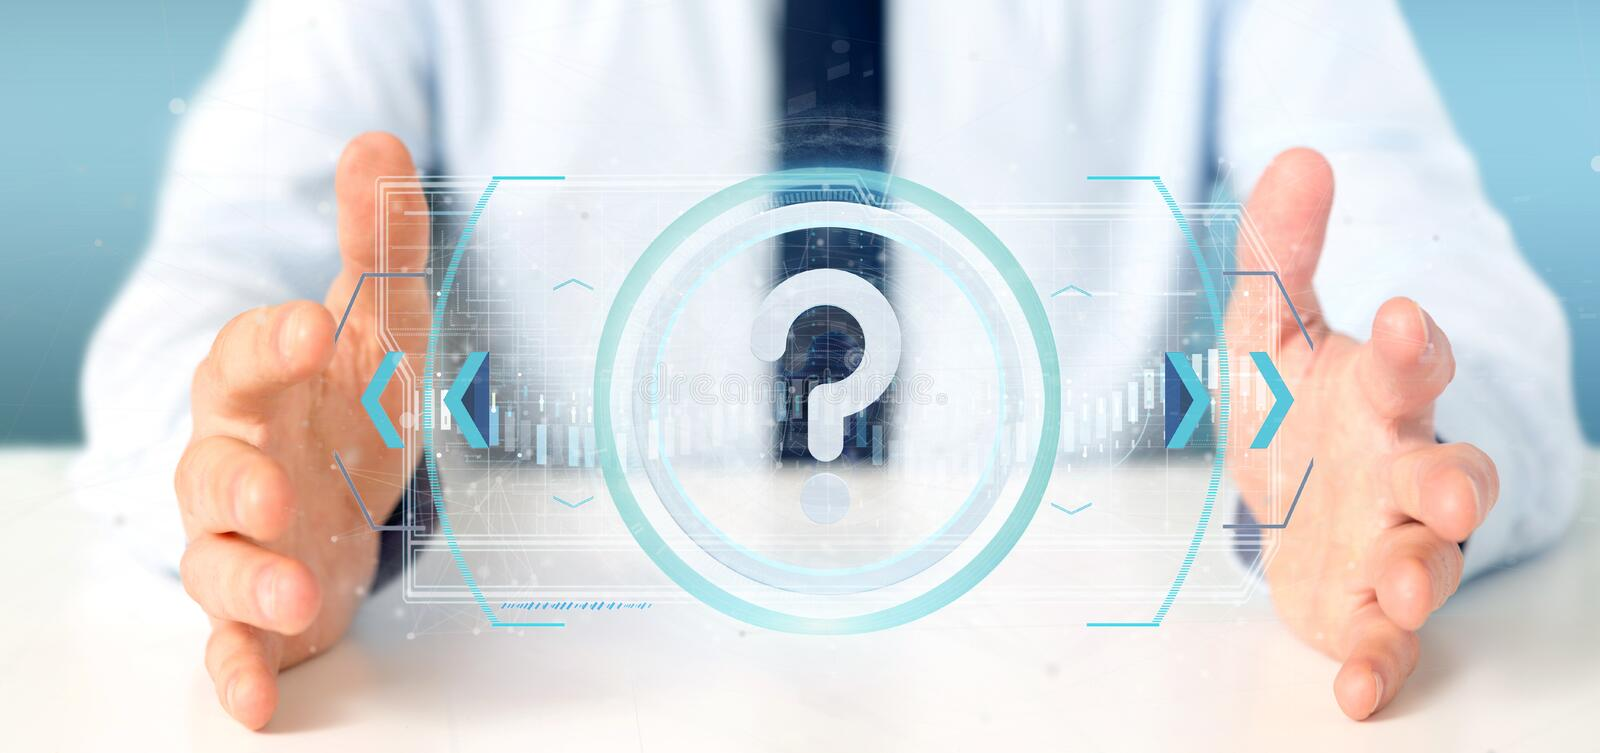 Man holding a Technology question mark icon on a circle 3d rende. View of a Man holding a Technology question mark icon on a circle 3d rendering stock image